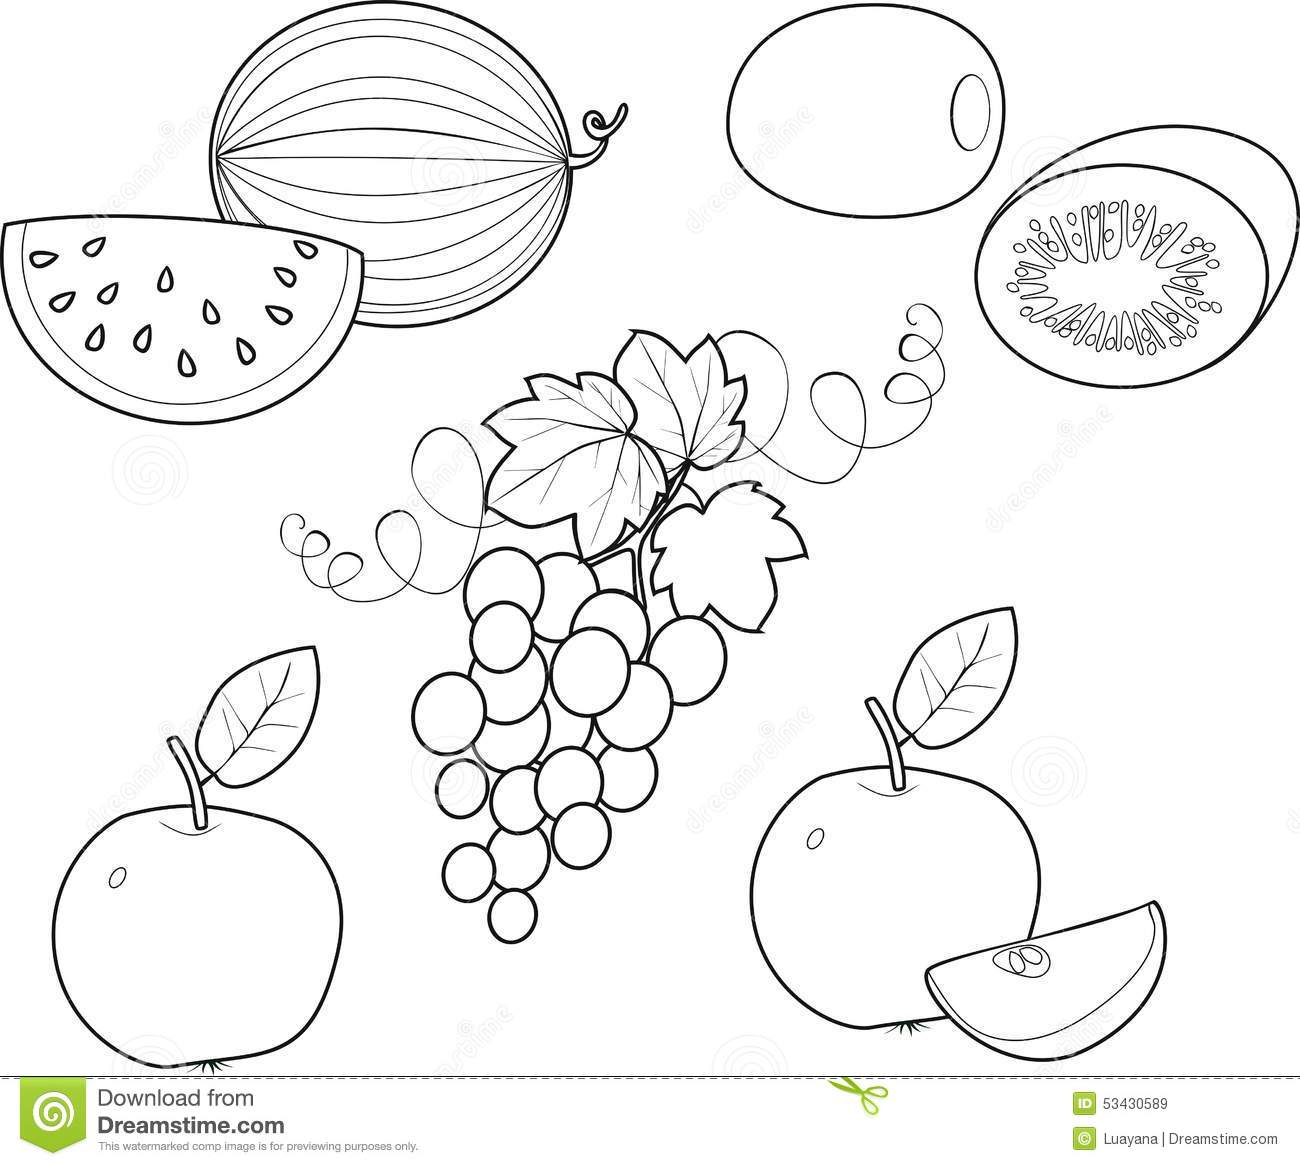 Coloring Fruit stock vector. Illustration of graphic - 53430589